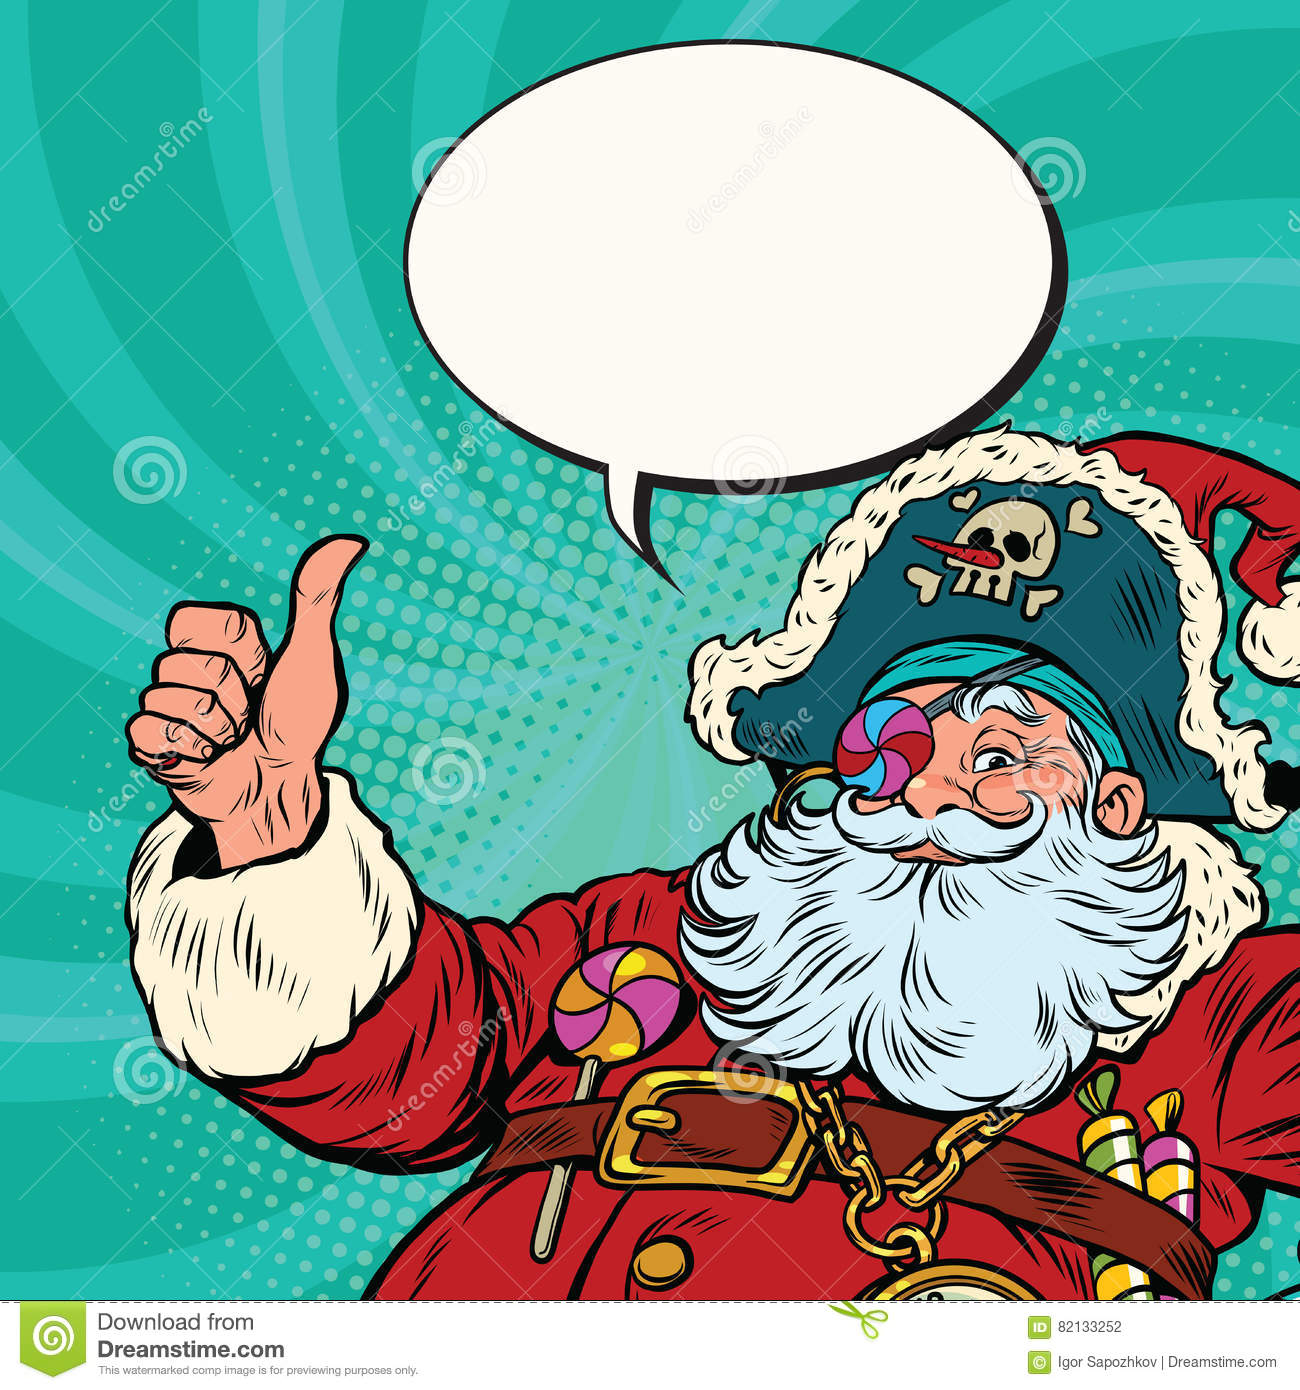 6277ae93c01f7 Santa Claus pirate wishes merry Christmas. Pop art retro vector illustration.  More similar stock illustrations